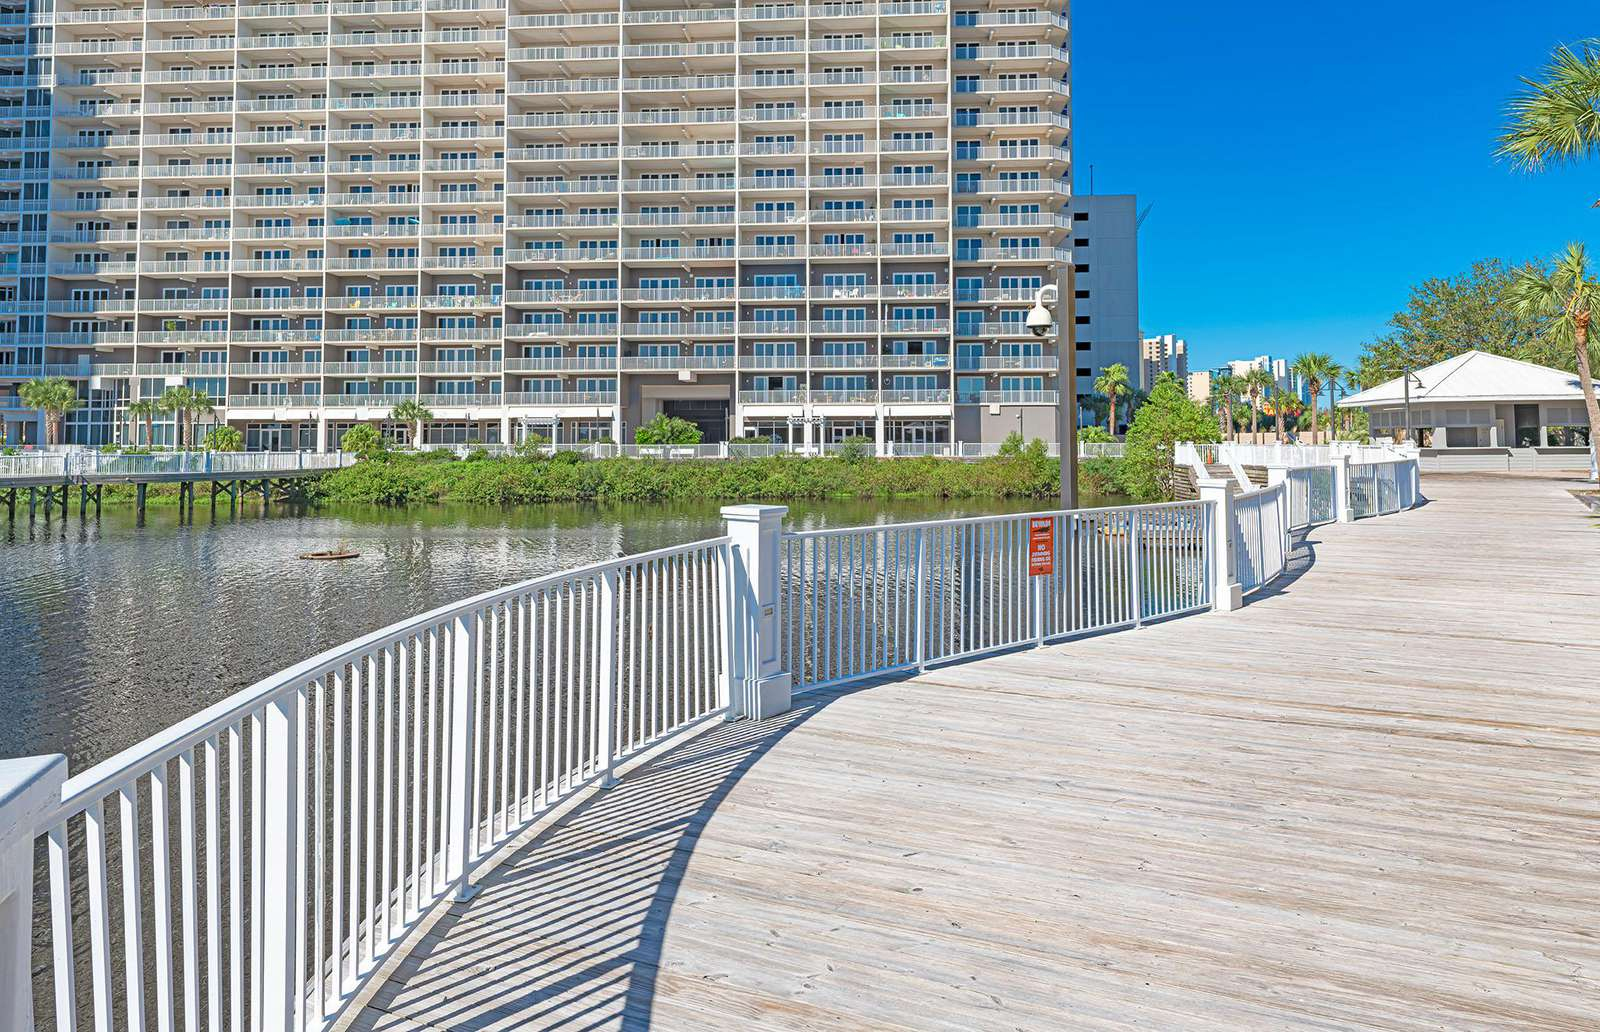 Laketown Wharf truly is an incredible complex!